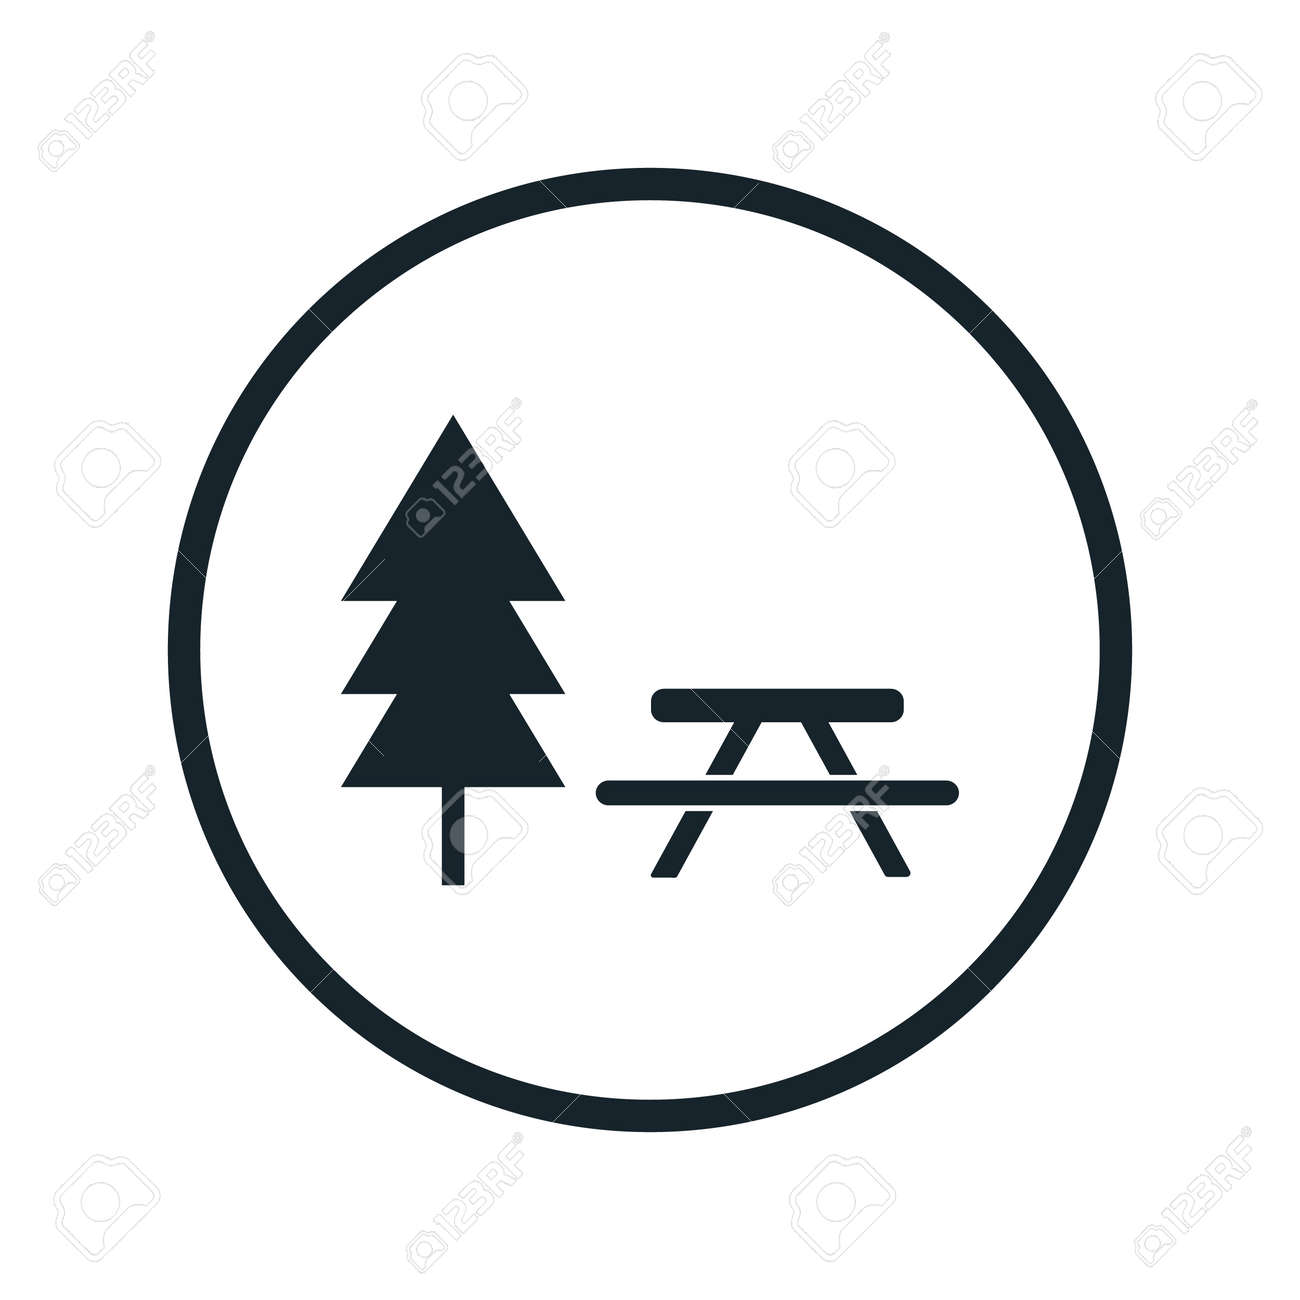 Picnic table icon royalty free cliparts vectors and stock picnic table icon stock vector 50343482 biocorpaavc